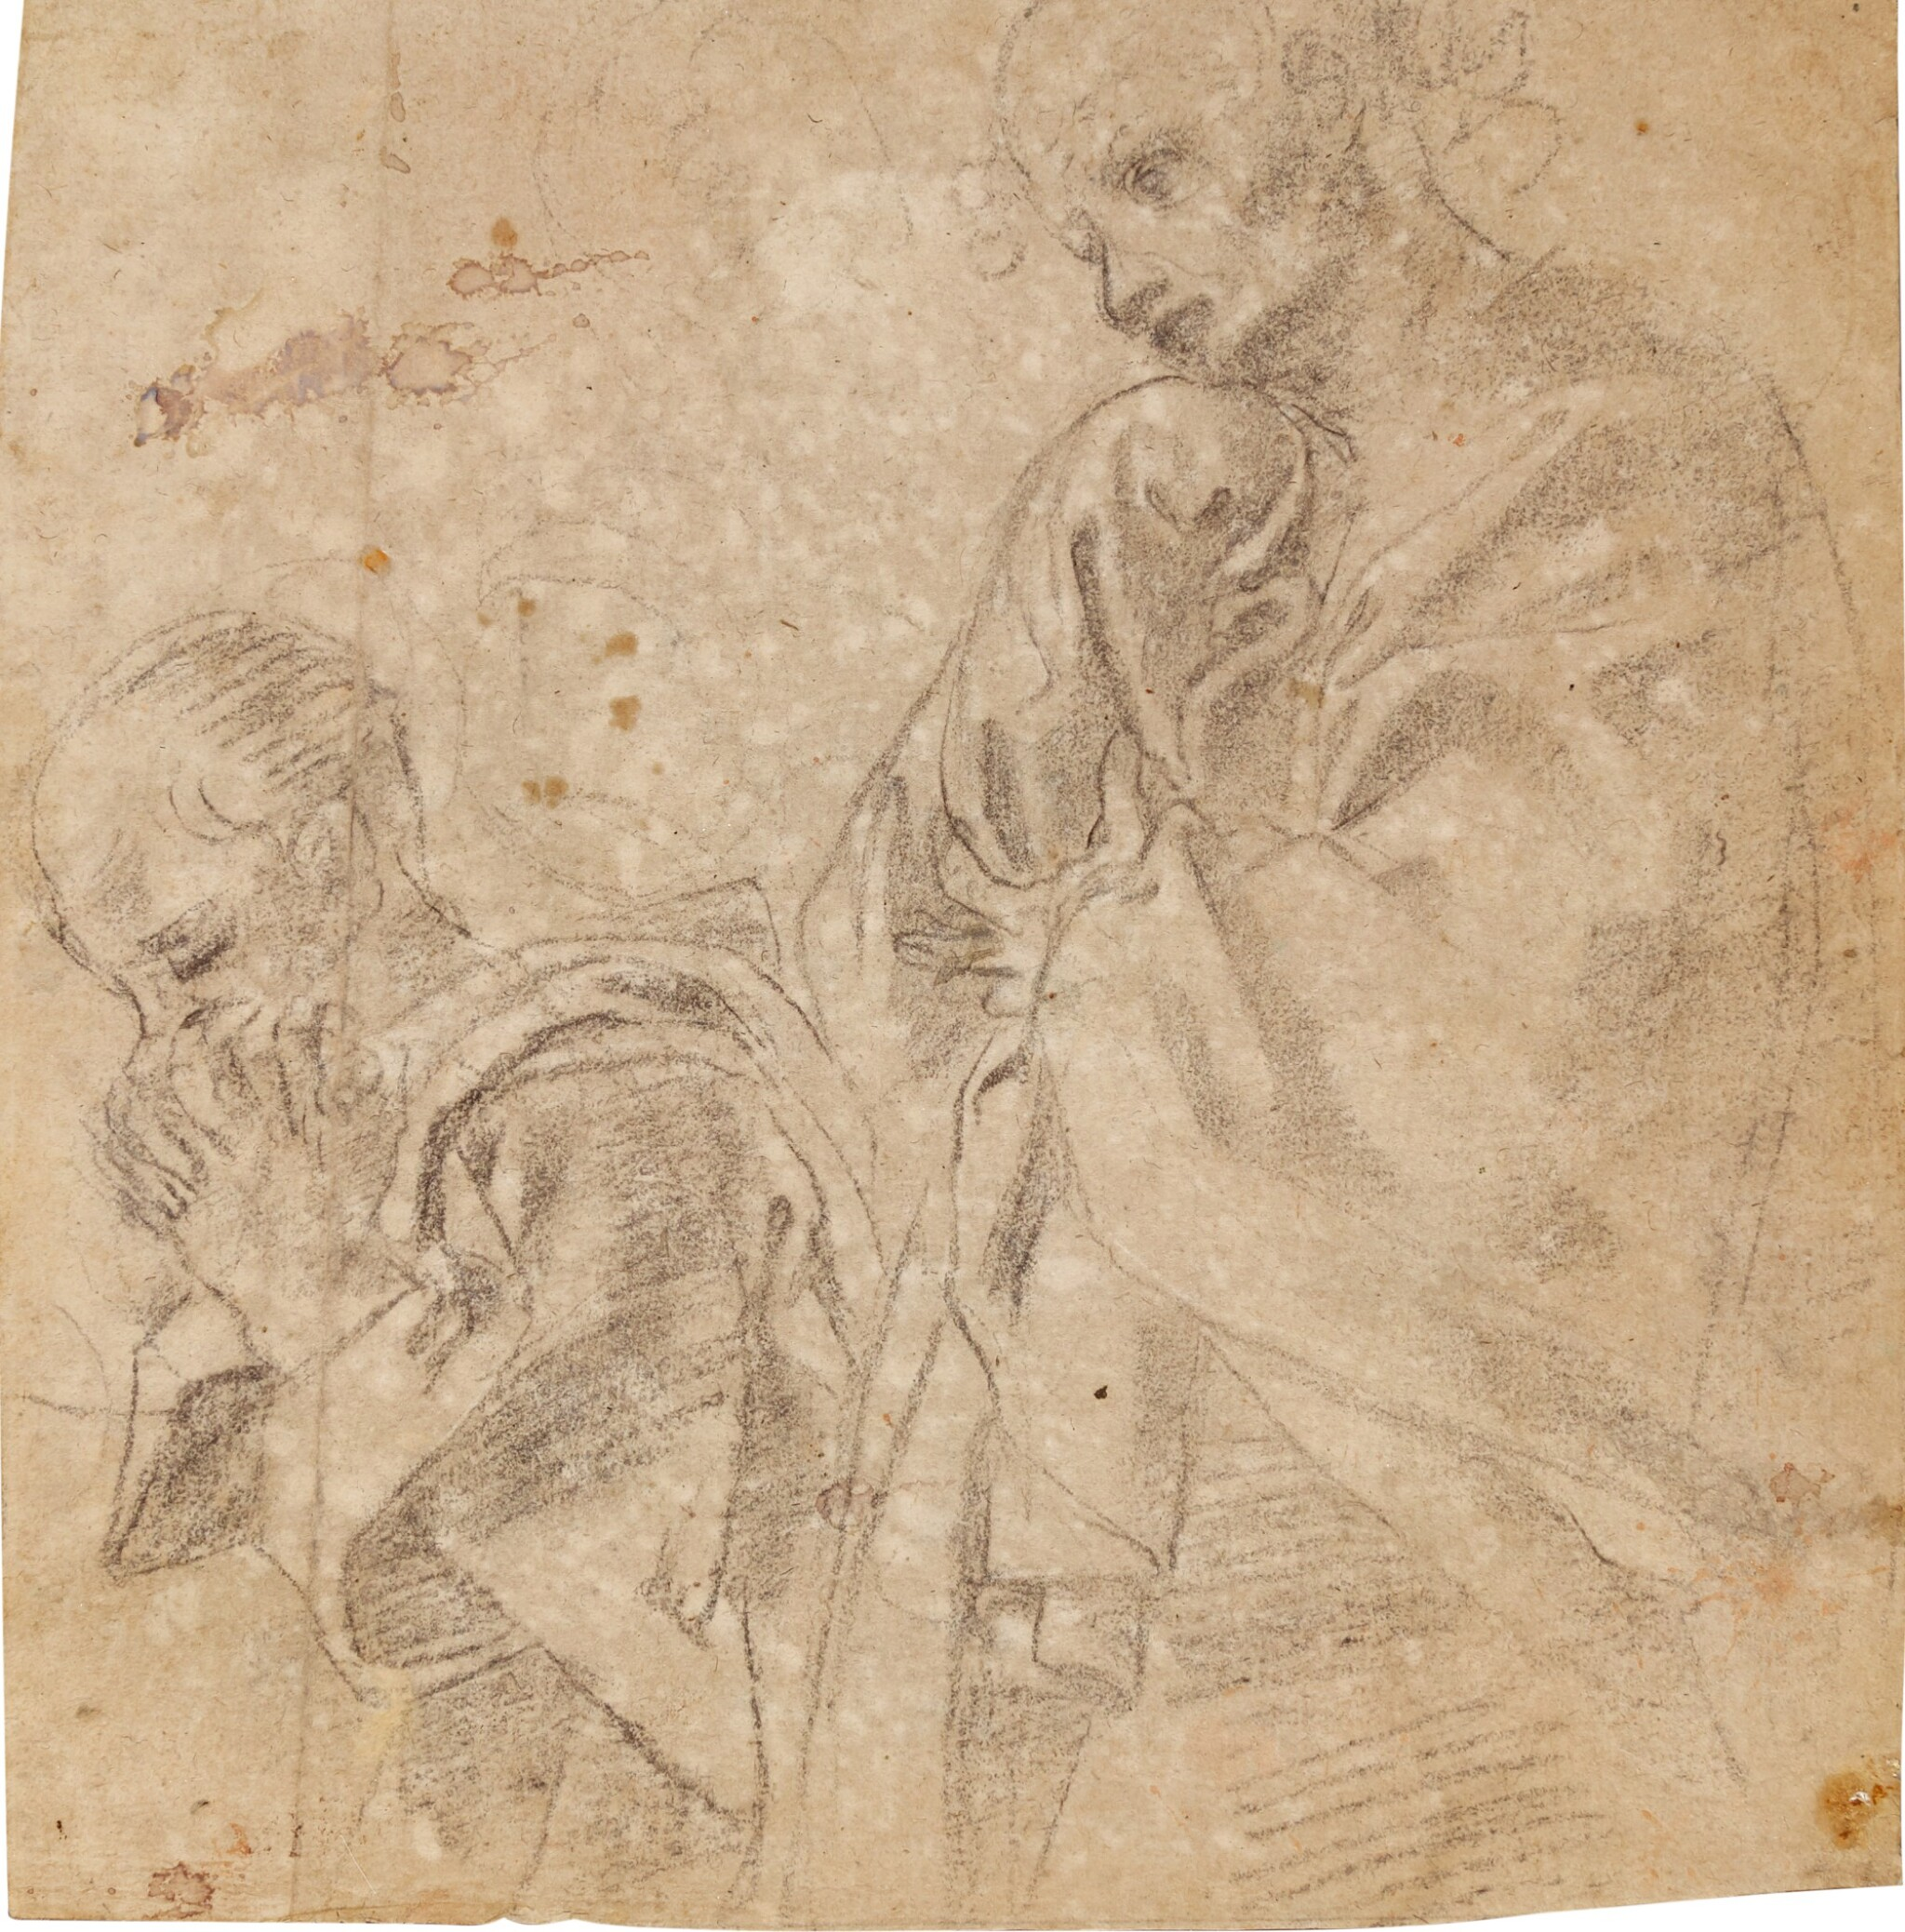 View full screen - View 1 of Lot 10. Recto: Two separate studies for the figure of St. John in a Lamentation; Verso: Study for the figure of the Madonna in an Assumption.